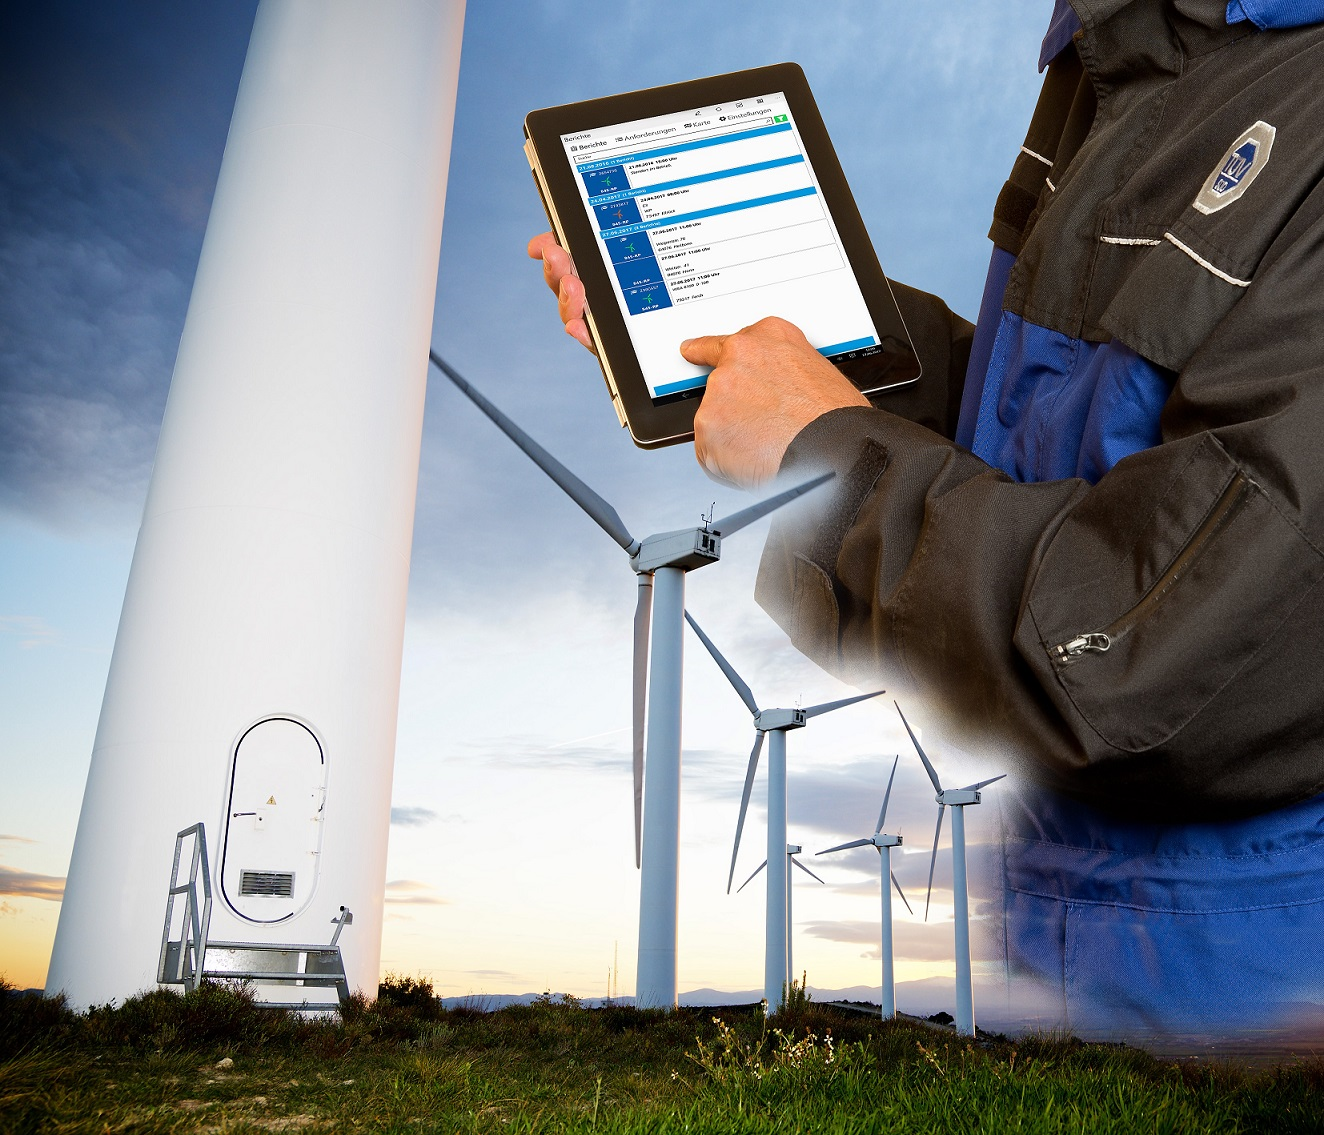 How To Extend The Lifetime Of Wind Turbines Renewable Energy World